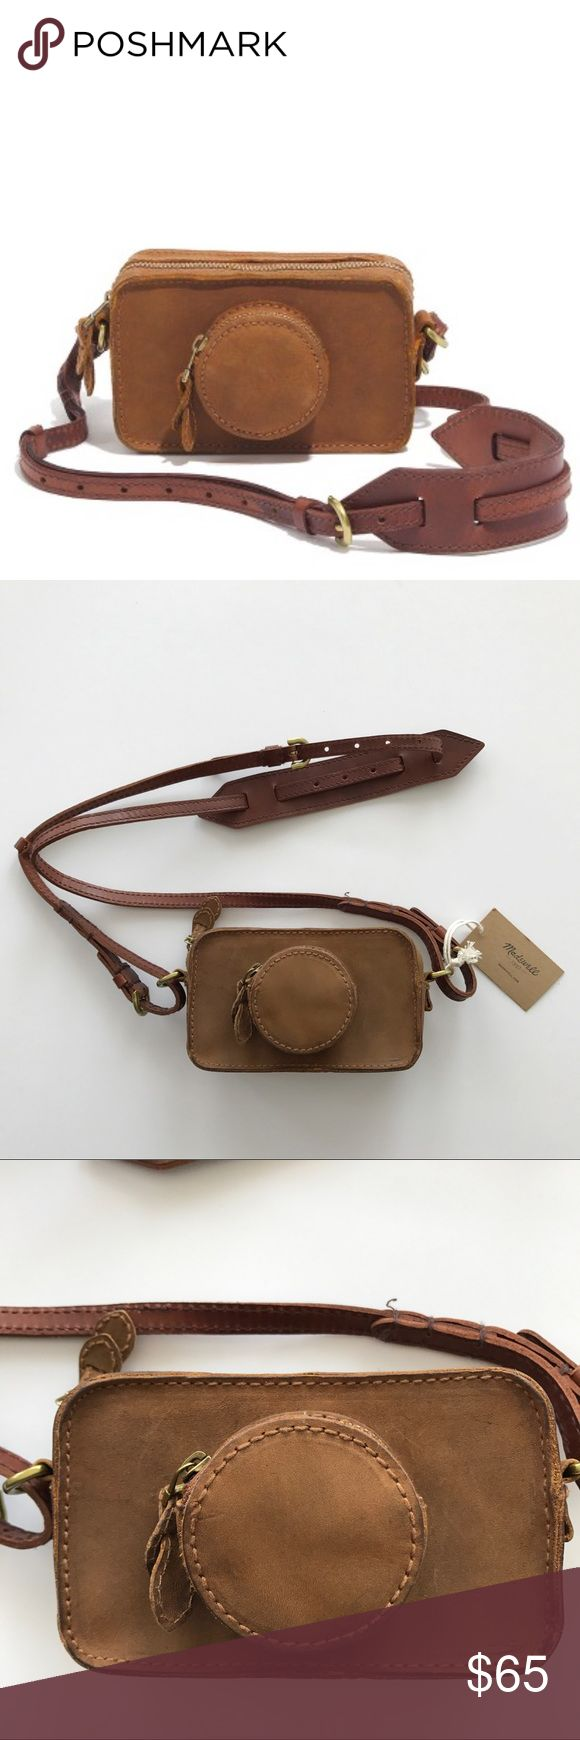 """NWT Madewell Camera Clutch A playful nod to vintage camera bags. Removable strap can clip onto an actual camera. Durable new matte-finish leather develops a rich patina the more you wear it. Leather Zip closure Zip pocket 19 3/4"""" handle drop 5 1/2""""H x 3 1/4""""W x 2""""D Item 08434 Note: both compartments are not attached so can't actually fit a camera with lens. Has partial tag attached – never used! Bag is SMALL – please read measurements. Matte leather has some natural markings on it – not…"""